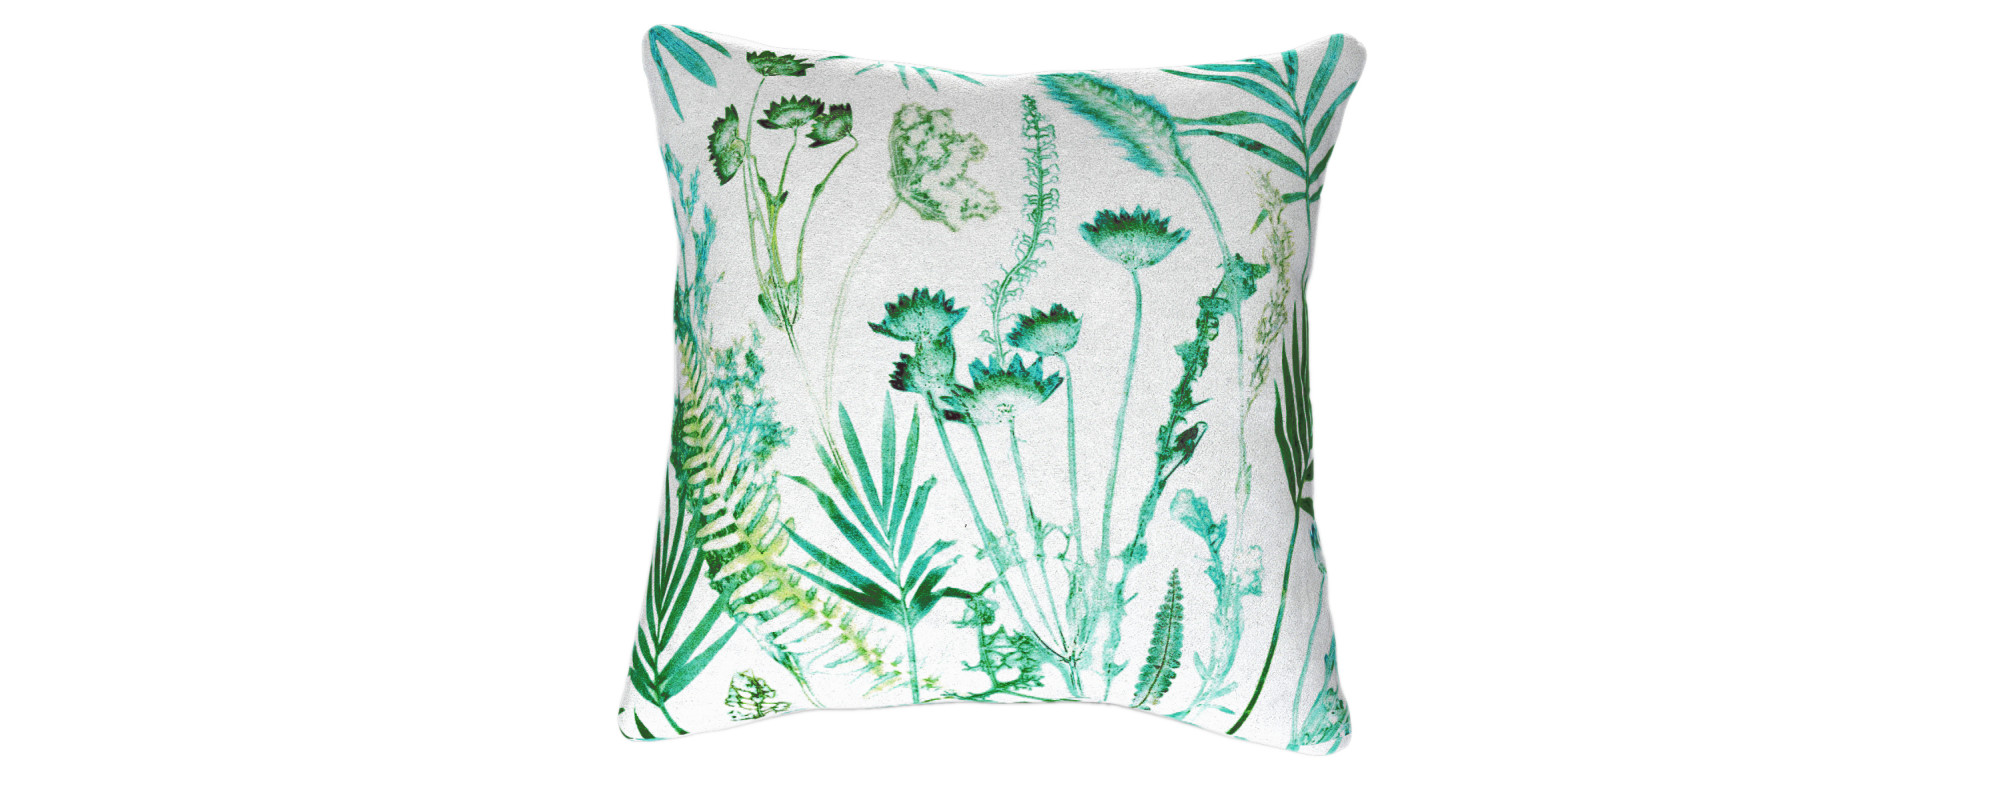 Botanical Teal Designed Cushion by Gillian Arnold